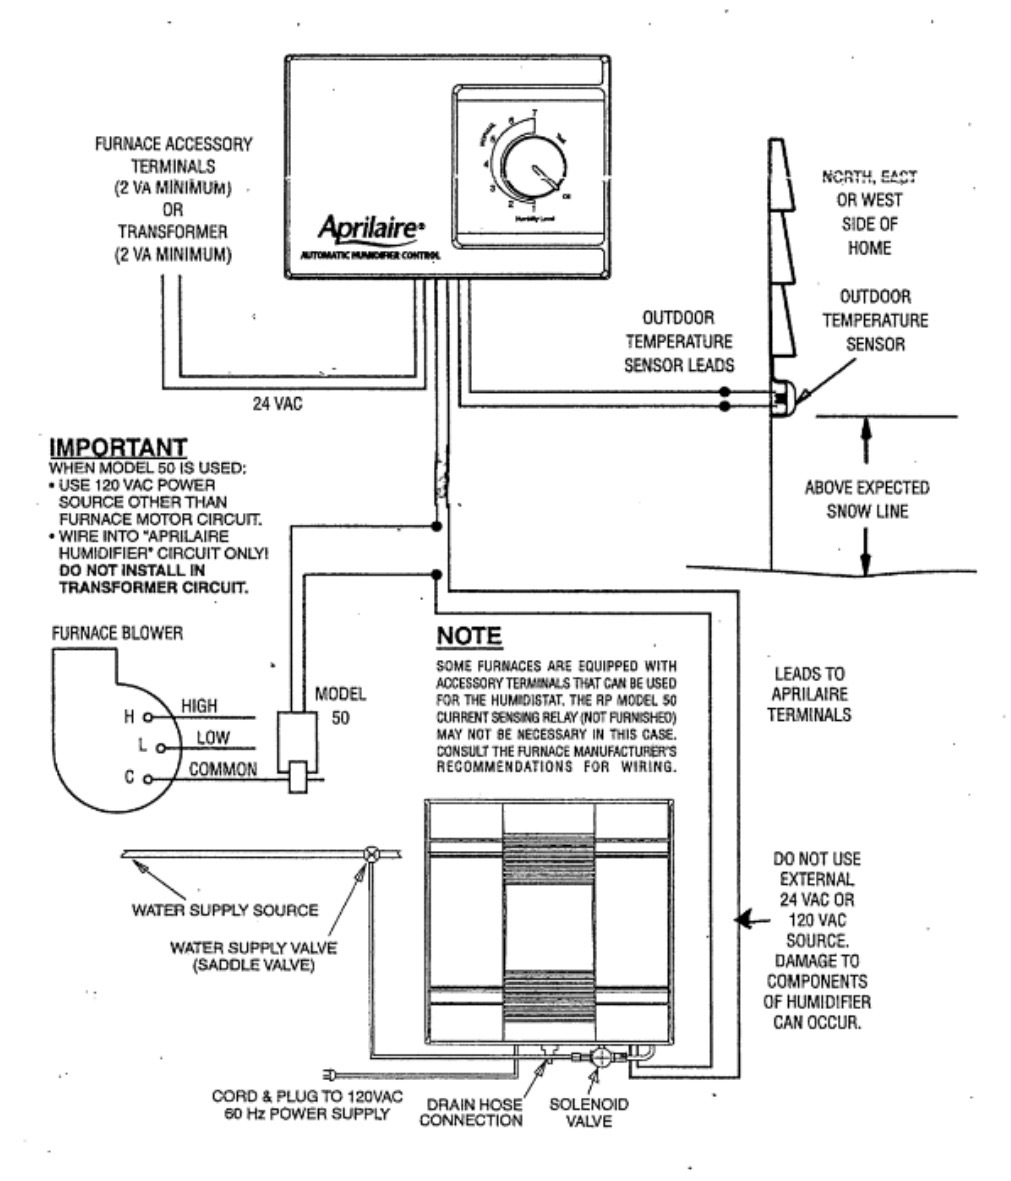 wiring diagram for humidifier to the furnace